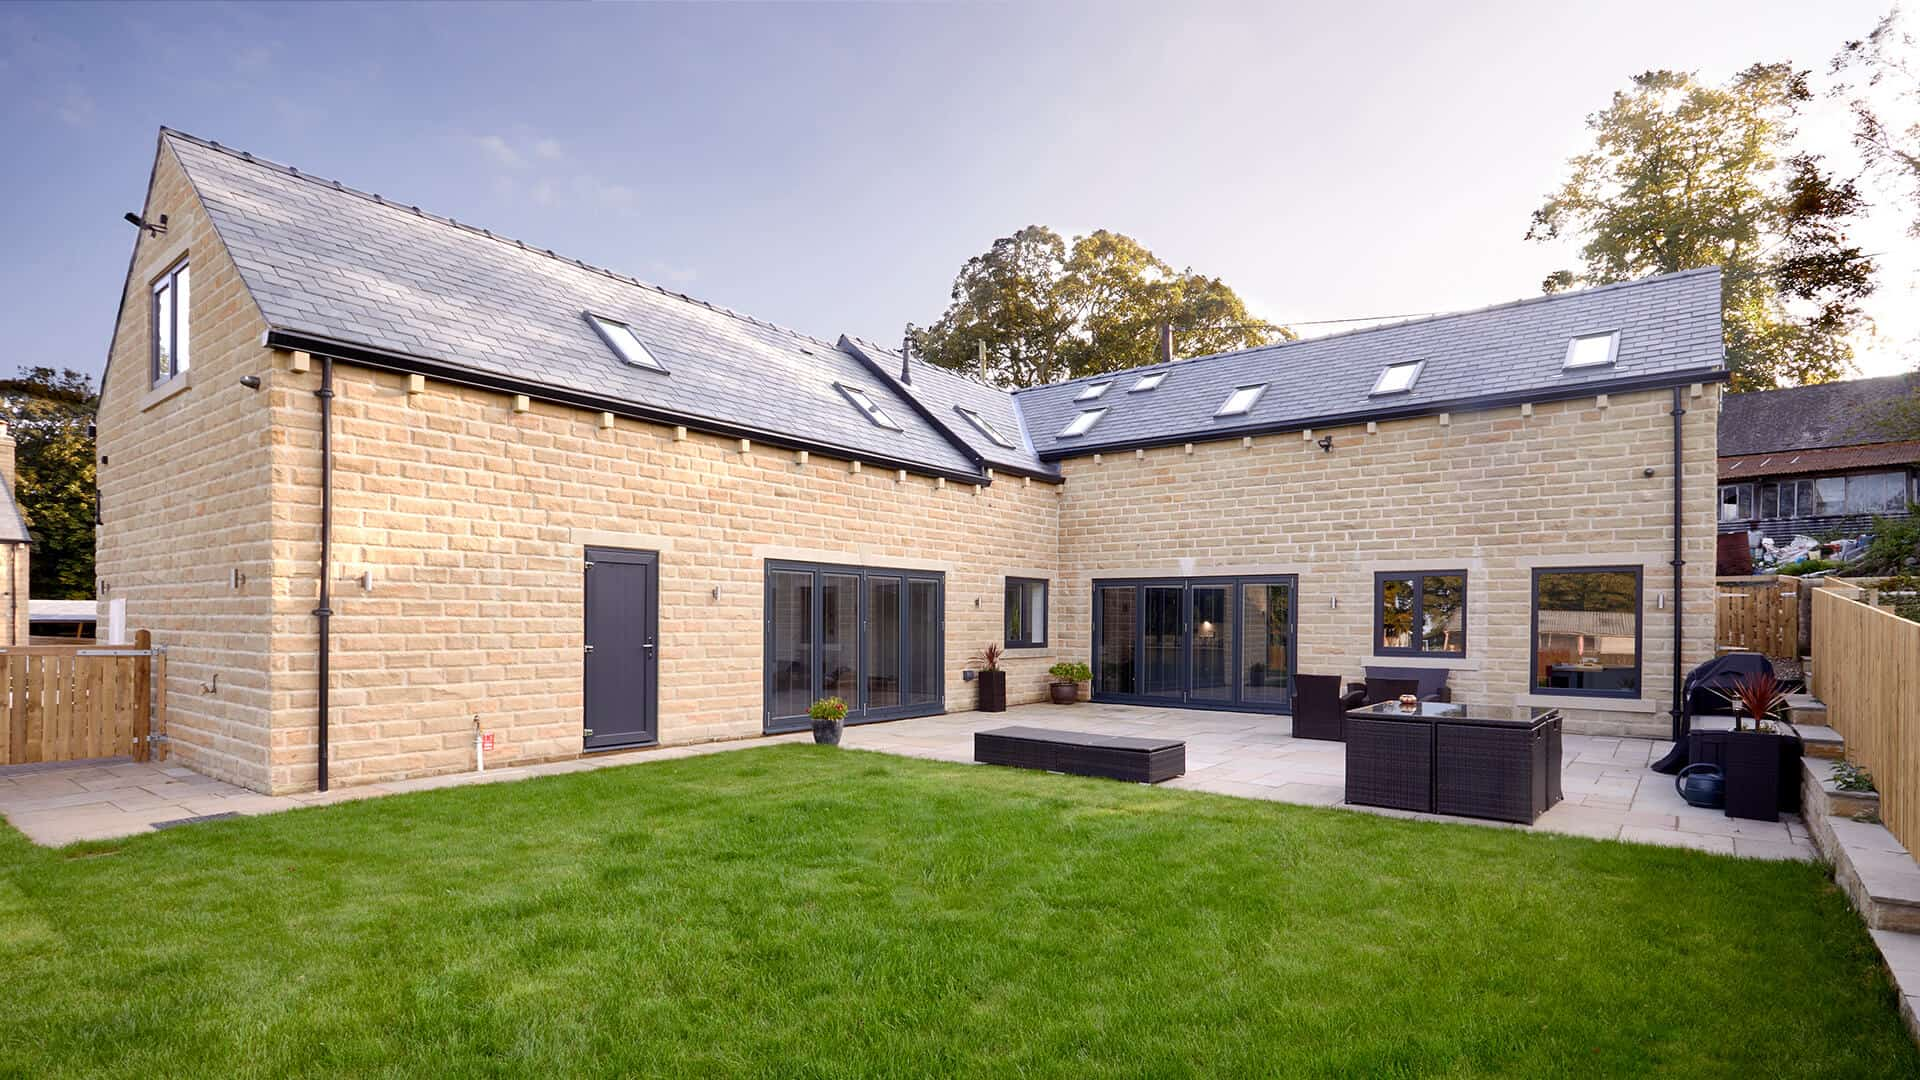 garden crescent wickersley house extension and bungalow modernisation